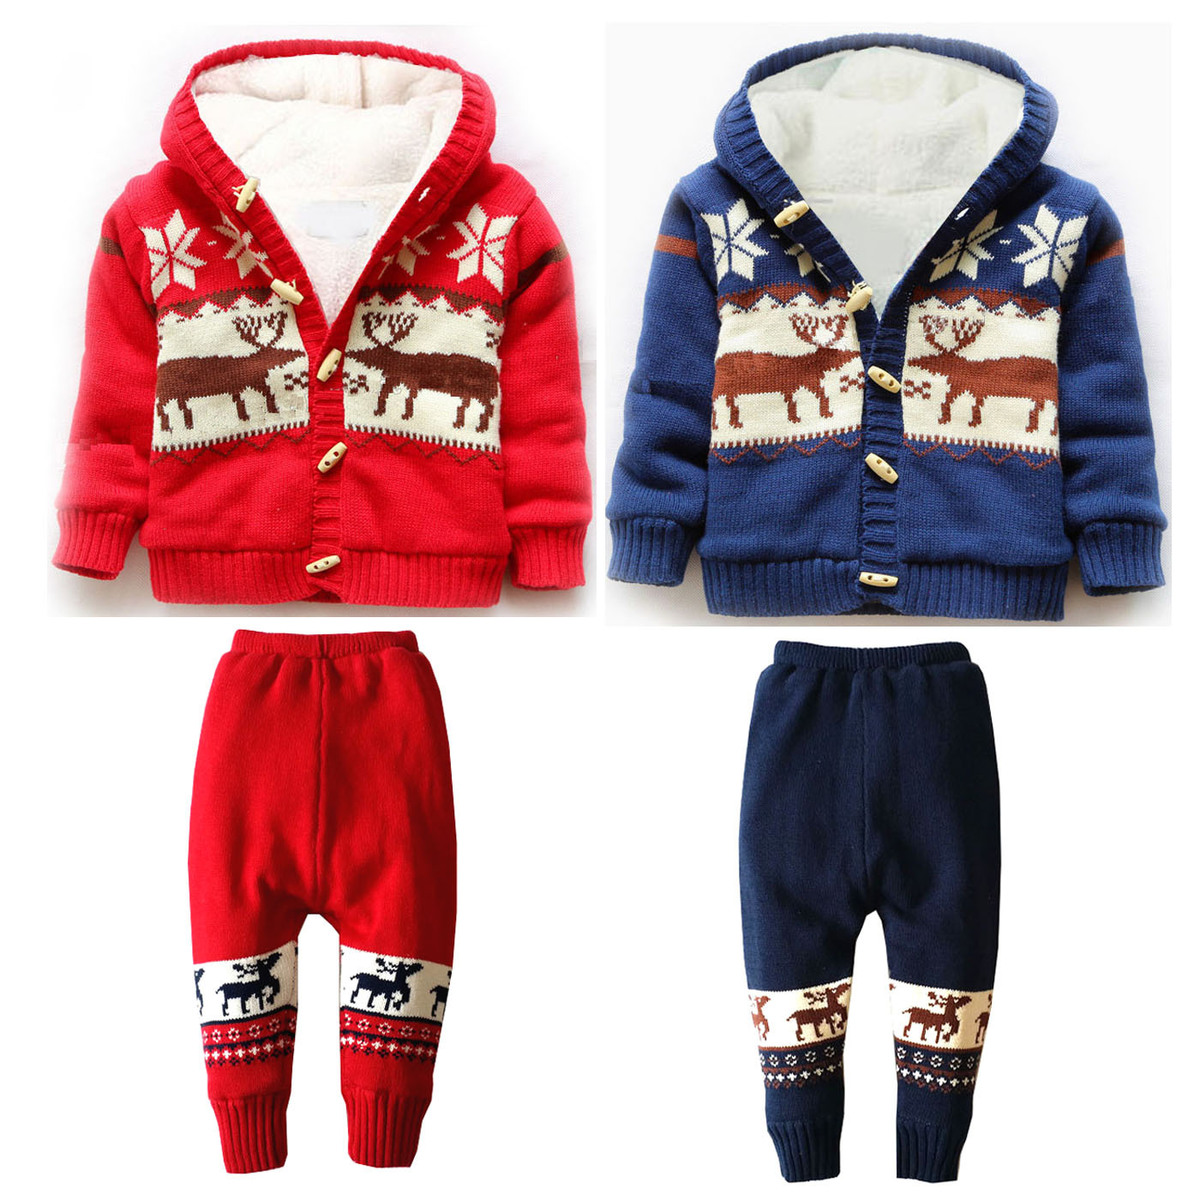 2017 Kids Christmas Clothes Sets Baby Boys Girls Elk Printing Knitting Sweater +knitting Pant Children Hooded Thick Jacket Suit 2015 new arrive super league christmas outfit pajamas for boys kids children suit st 004